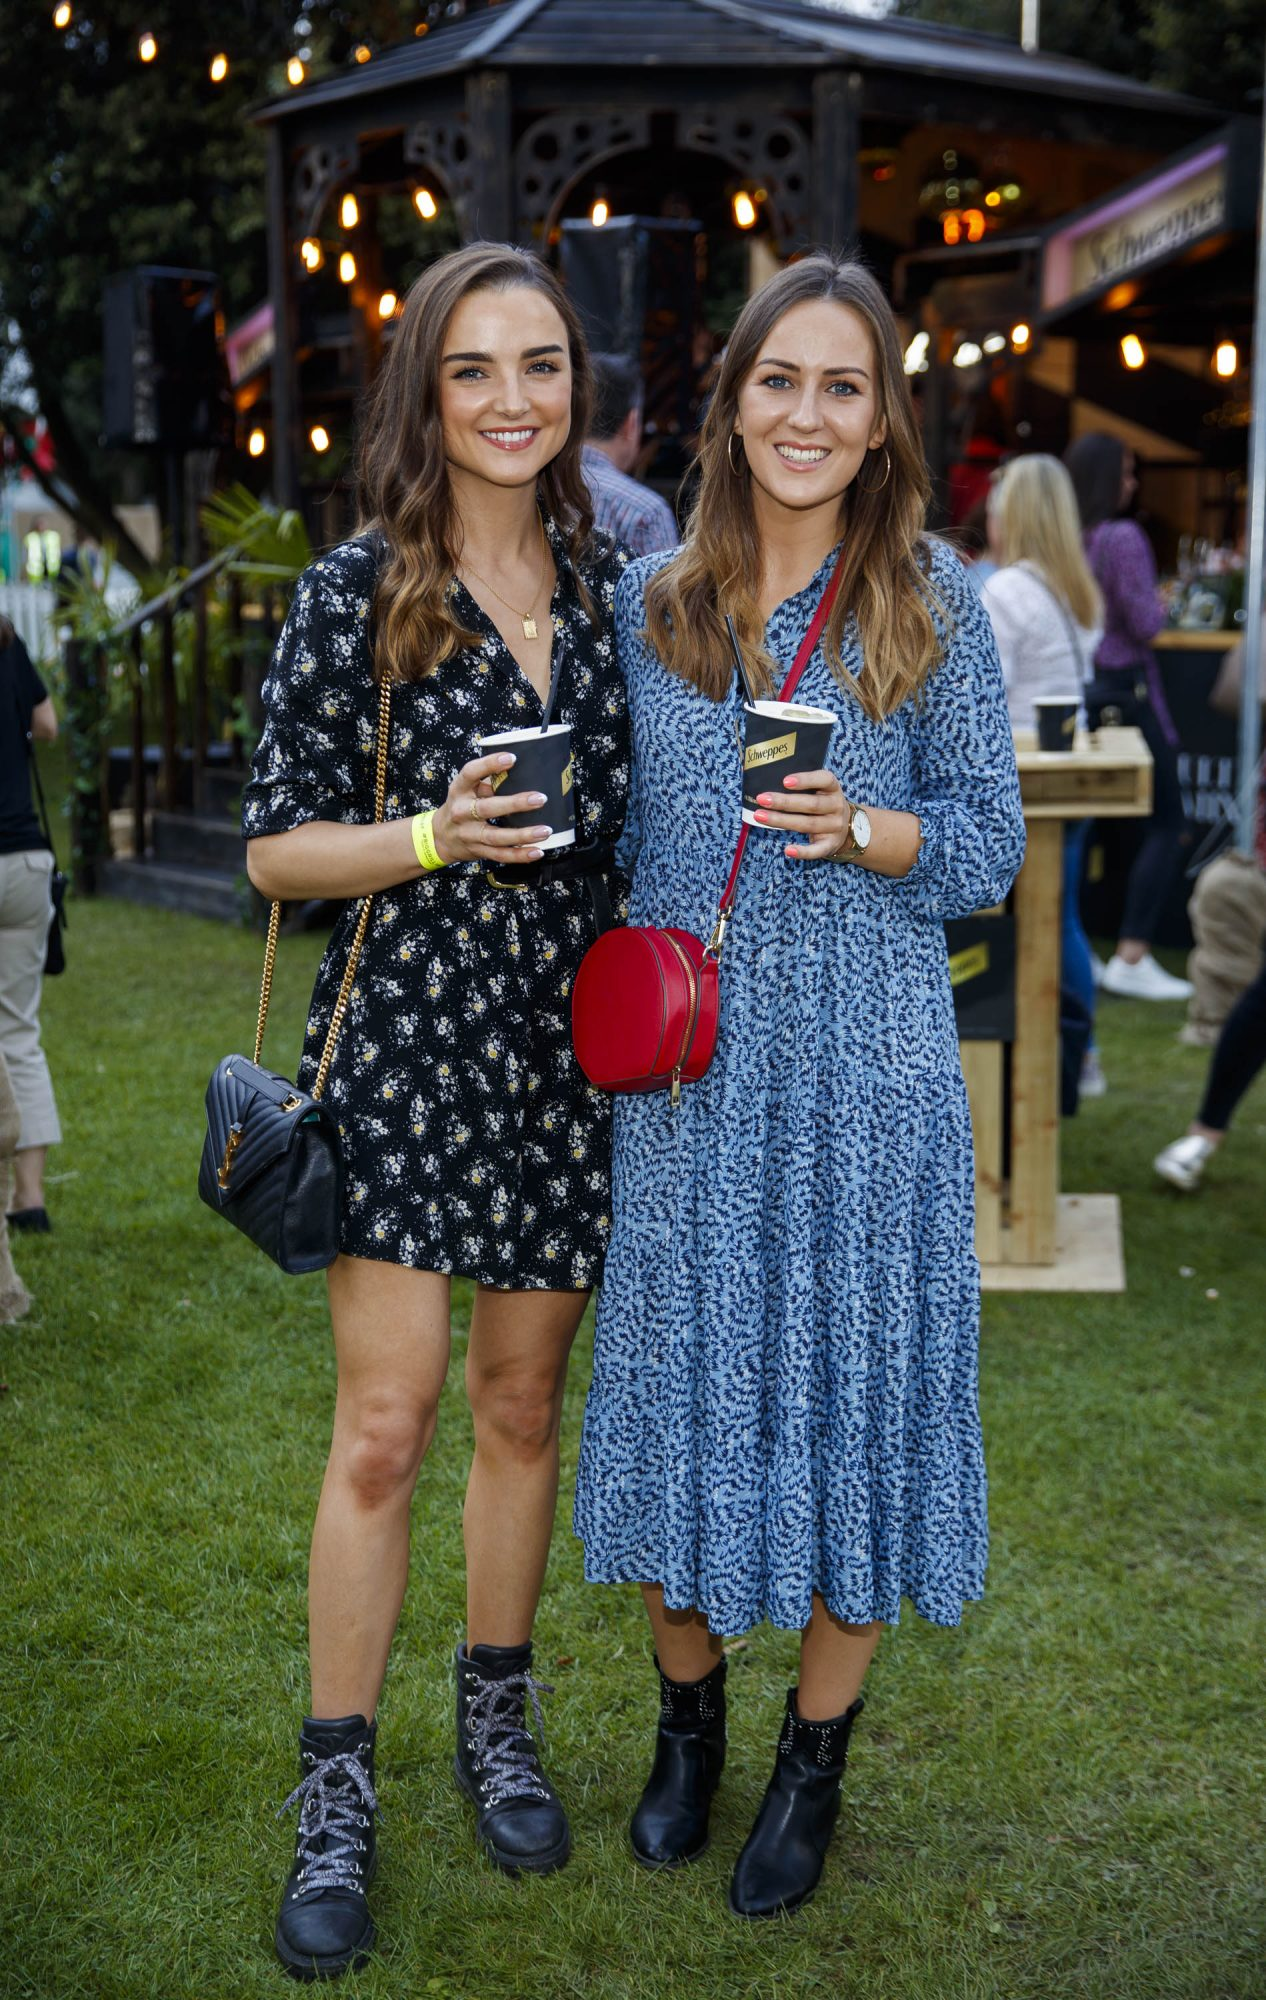 Niamh O'Sullivan and Sadhbh Higgins at the Schweppes #UltimateMixer Sessions at The Big Grill festival in Herbert Park, Dublin, where guests sipped on expertly crafted cocktails and enjoyed live music mixes from Irish bands and DJs. Picture: Andres Poveda